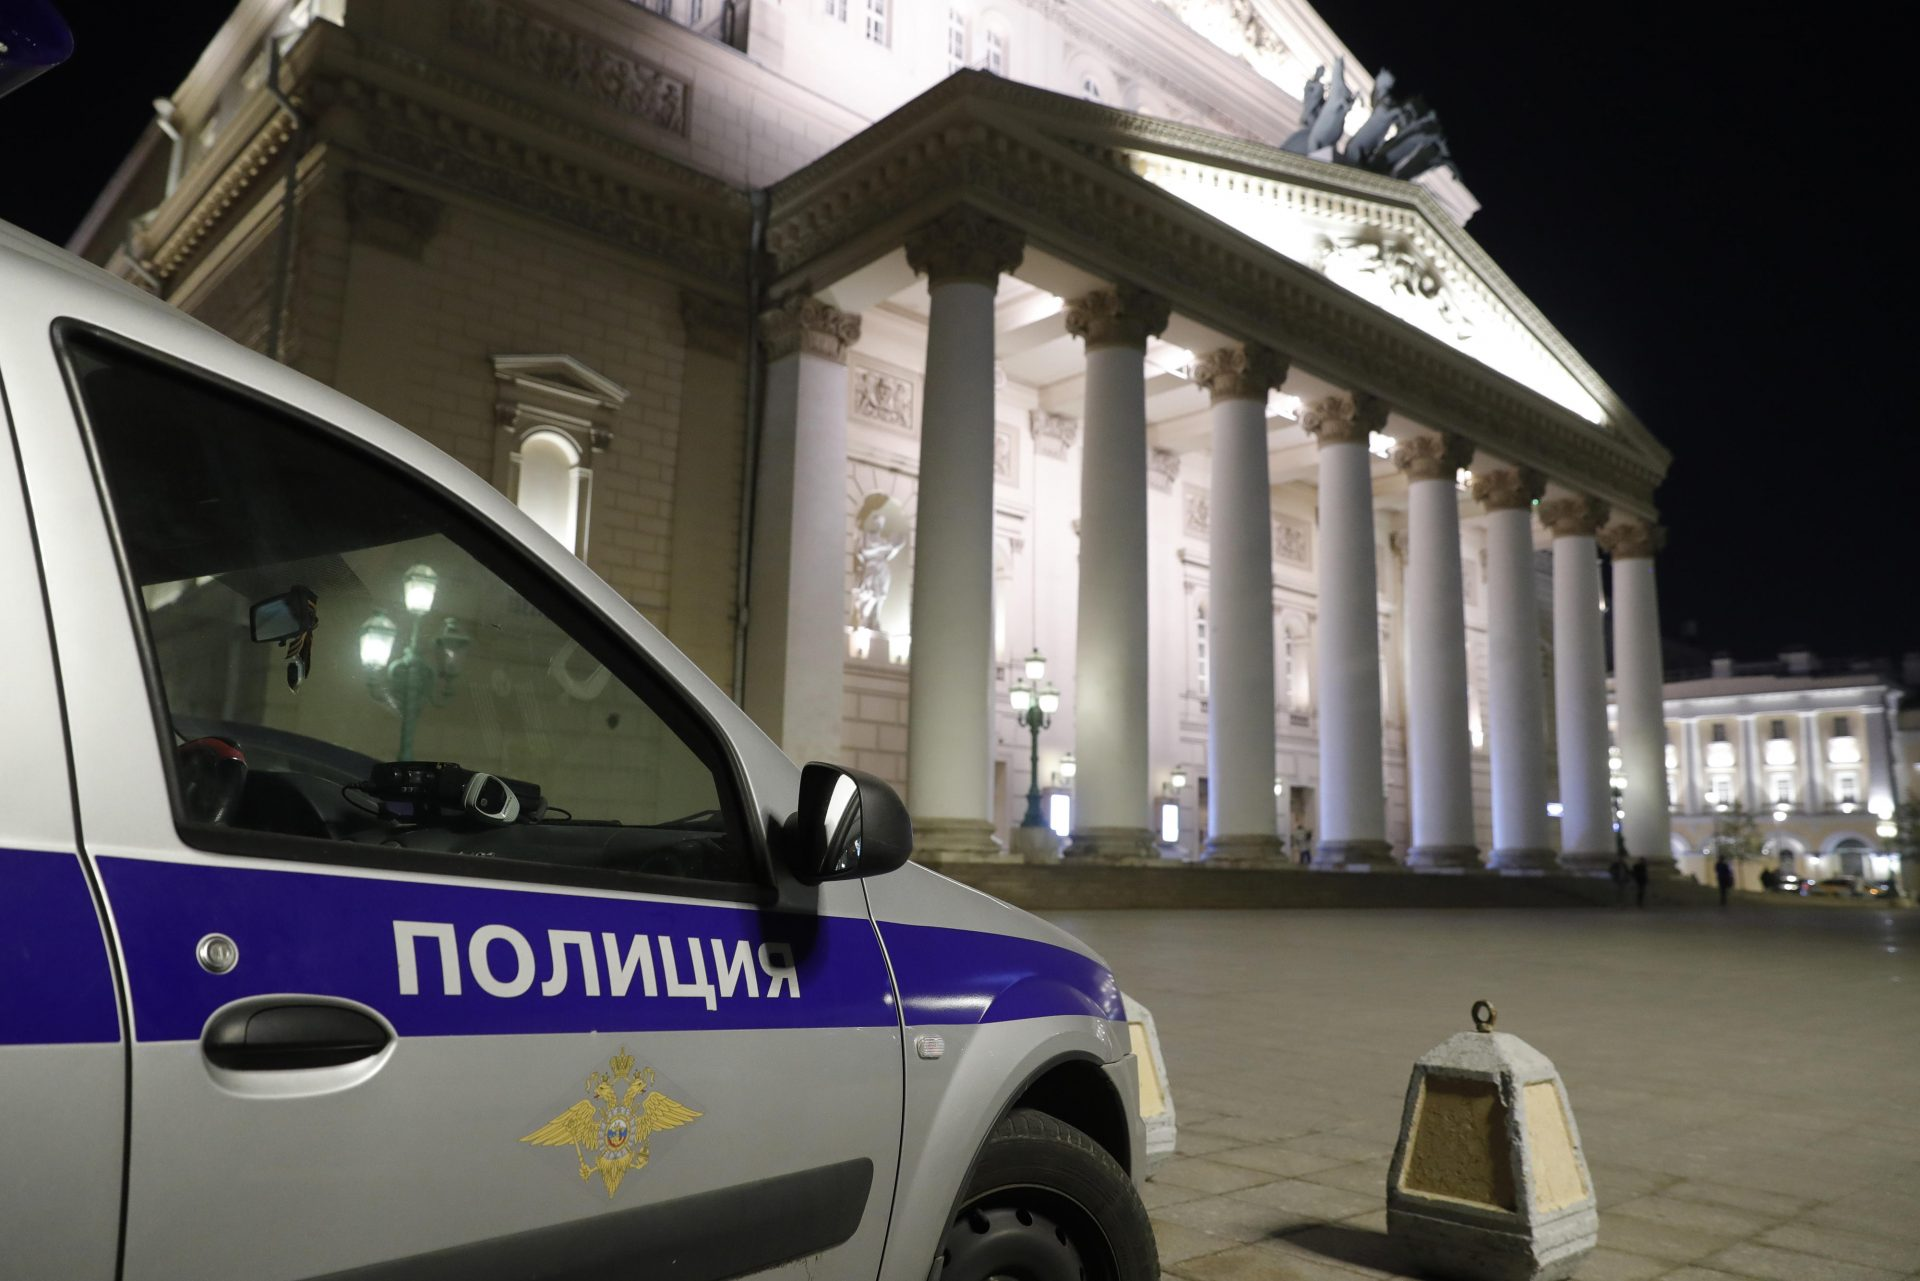 A police car outside Moscow's Bolshoi Theatre after actor Yevgeny Kulesh was crushed to death by a prop during a performance of Sadko by Nikolai Rimsky-Korsakov. Photo: Mikhail Japaridze/TASS via Getty Images